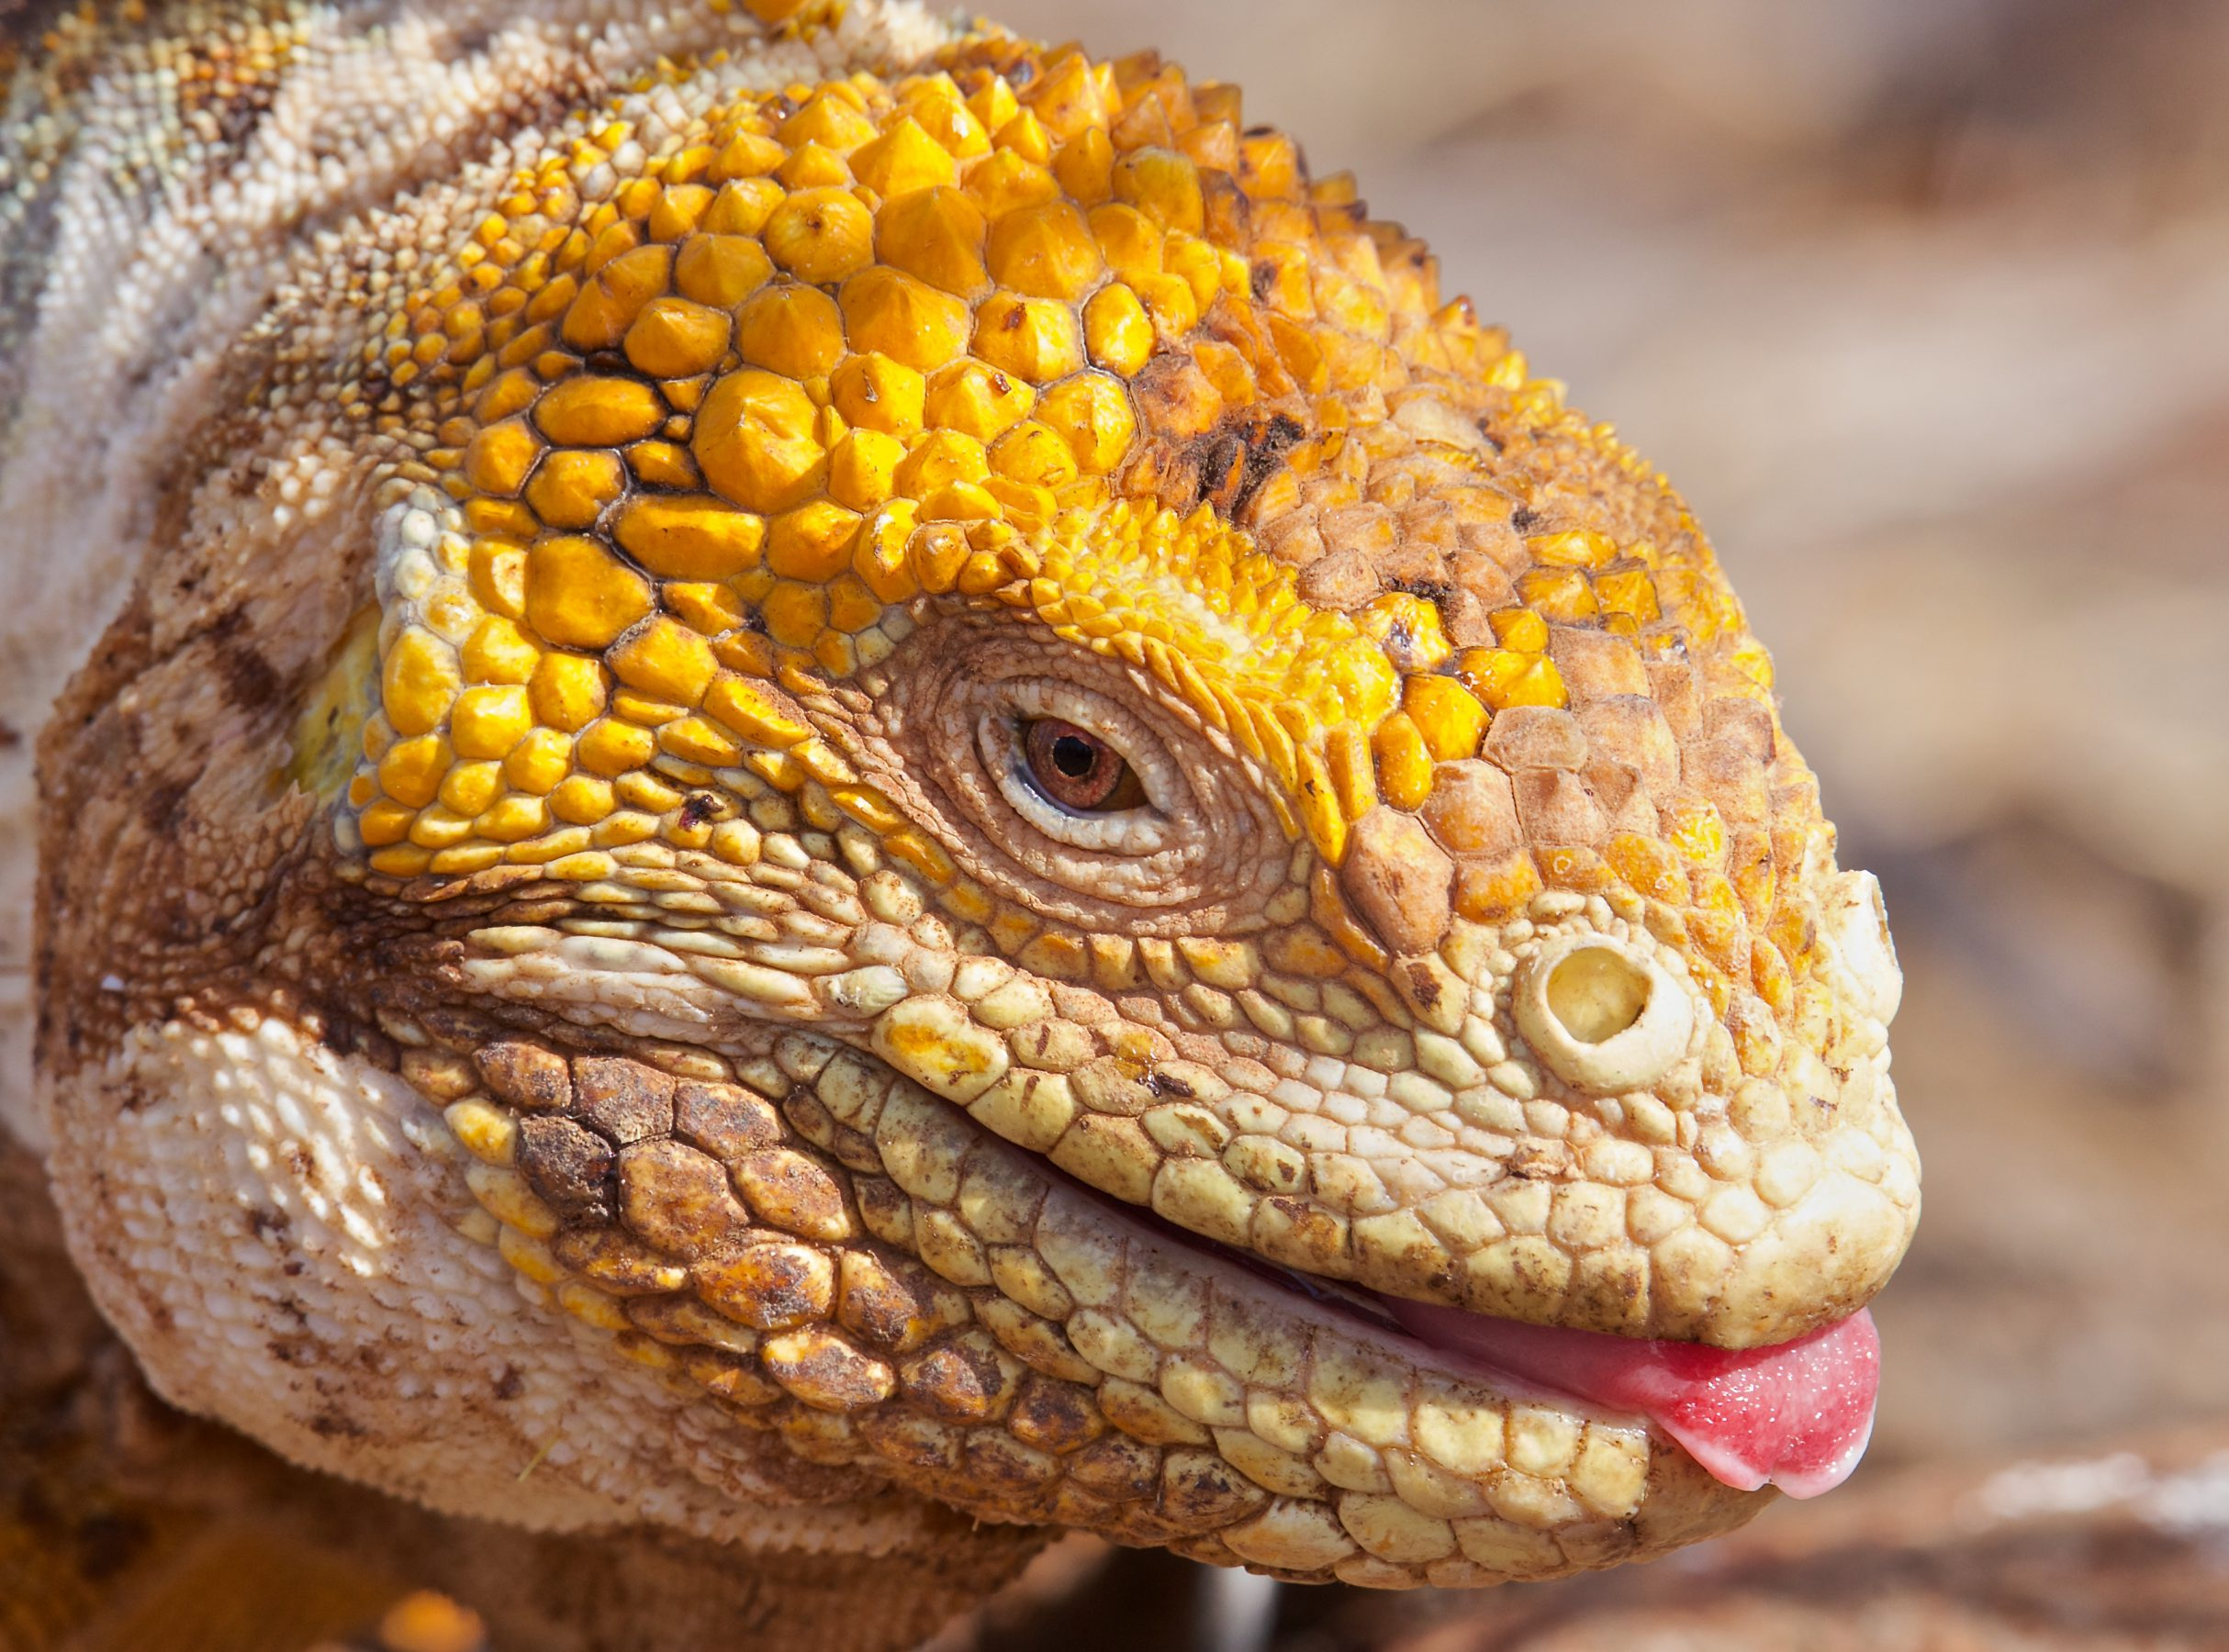 The face of a land iguana close up